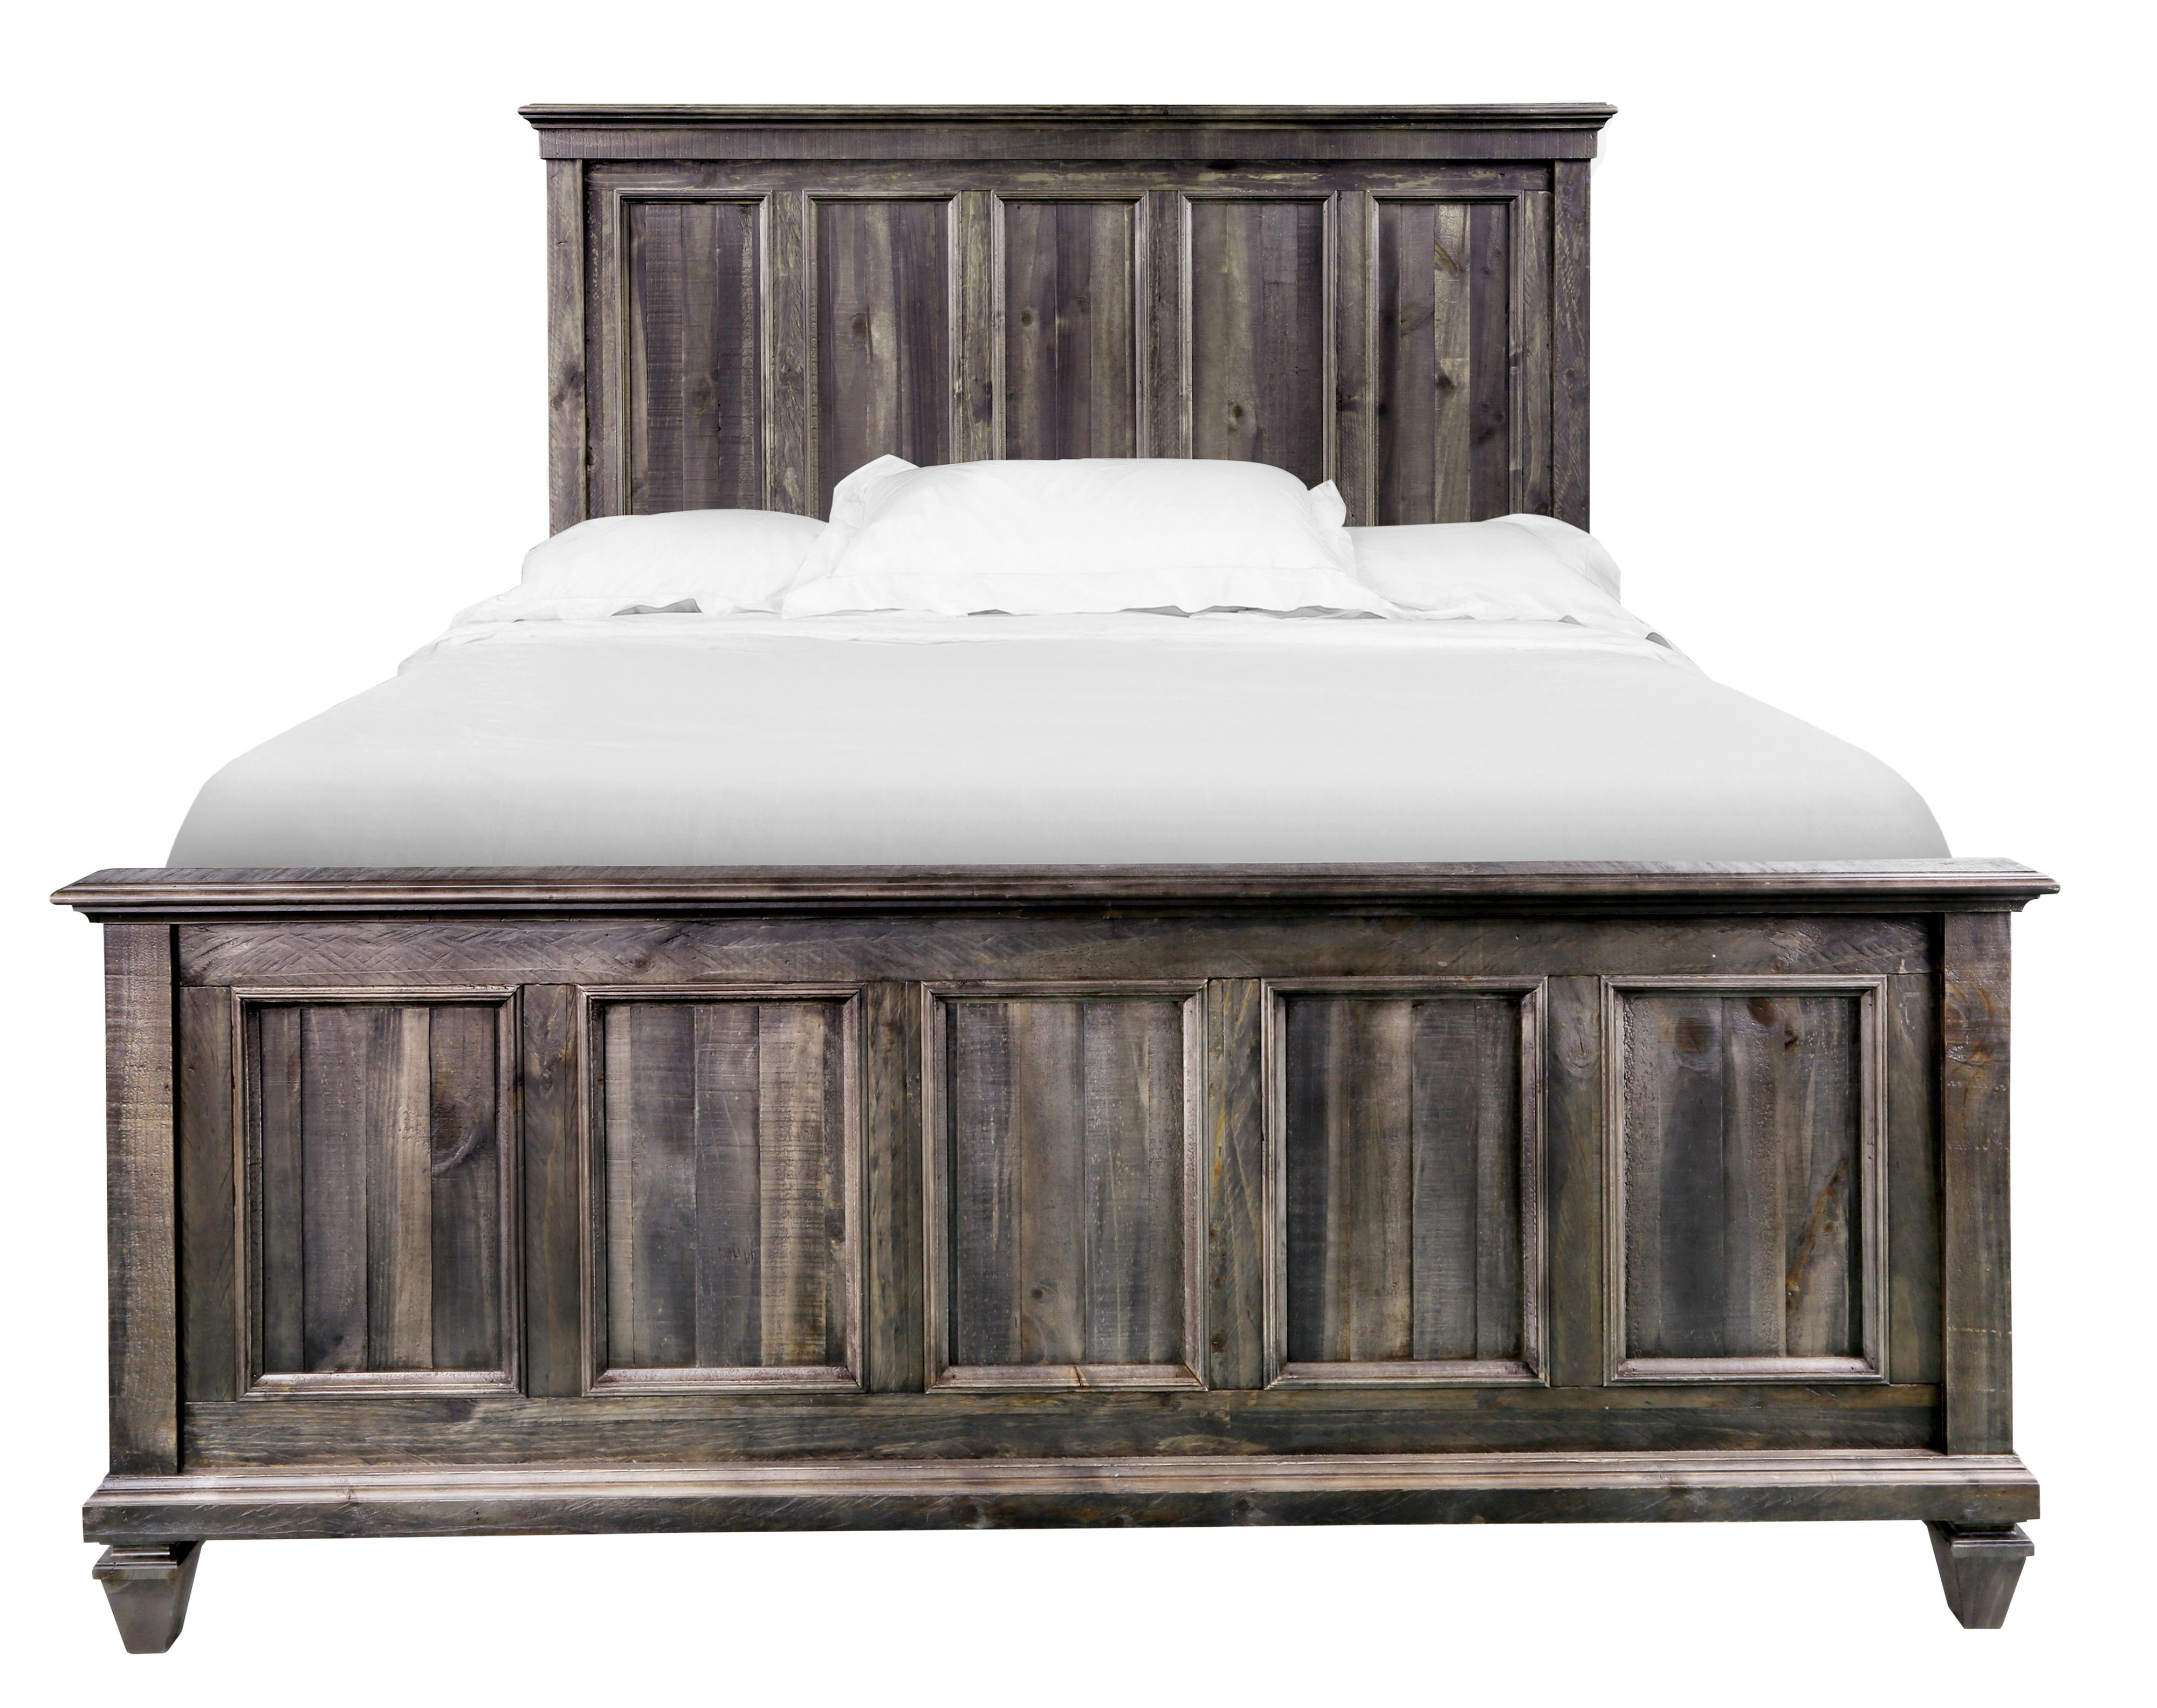 Queen Panel Bed with Headboard and Footboard